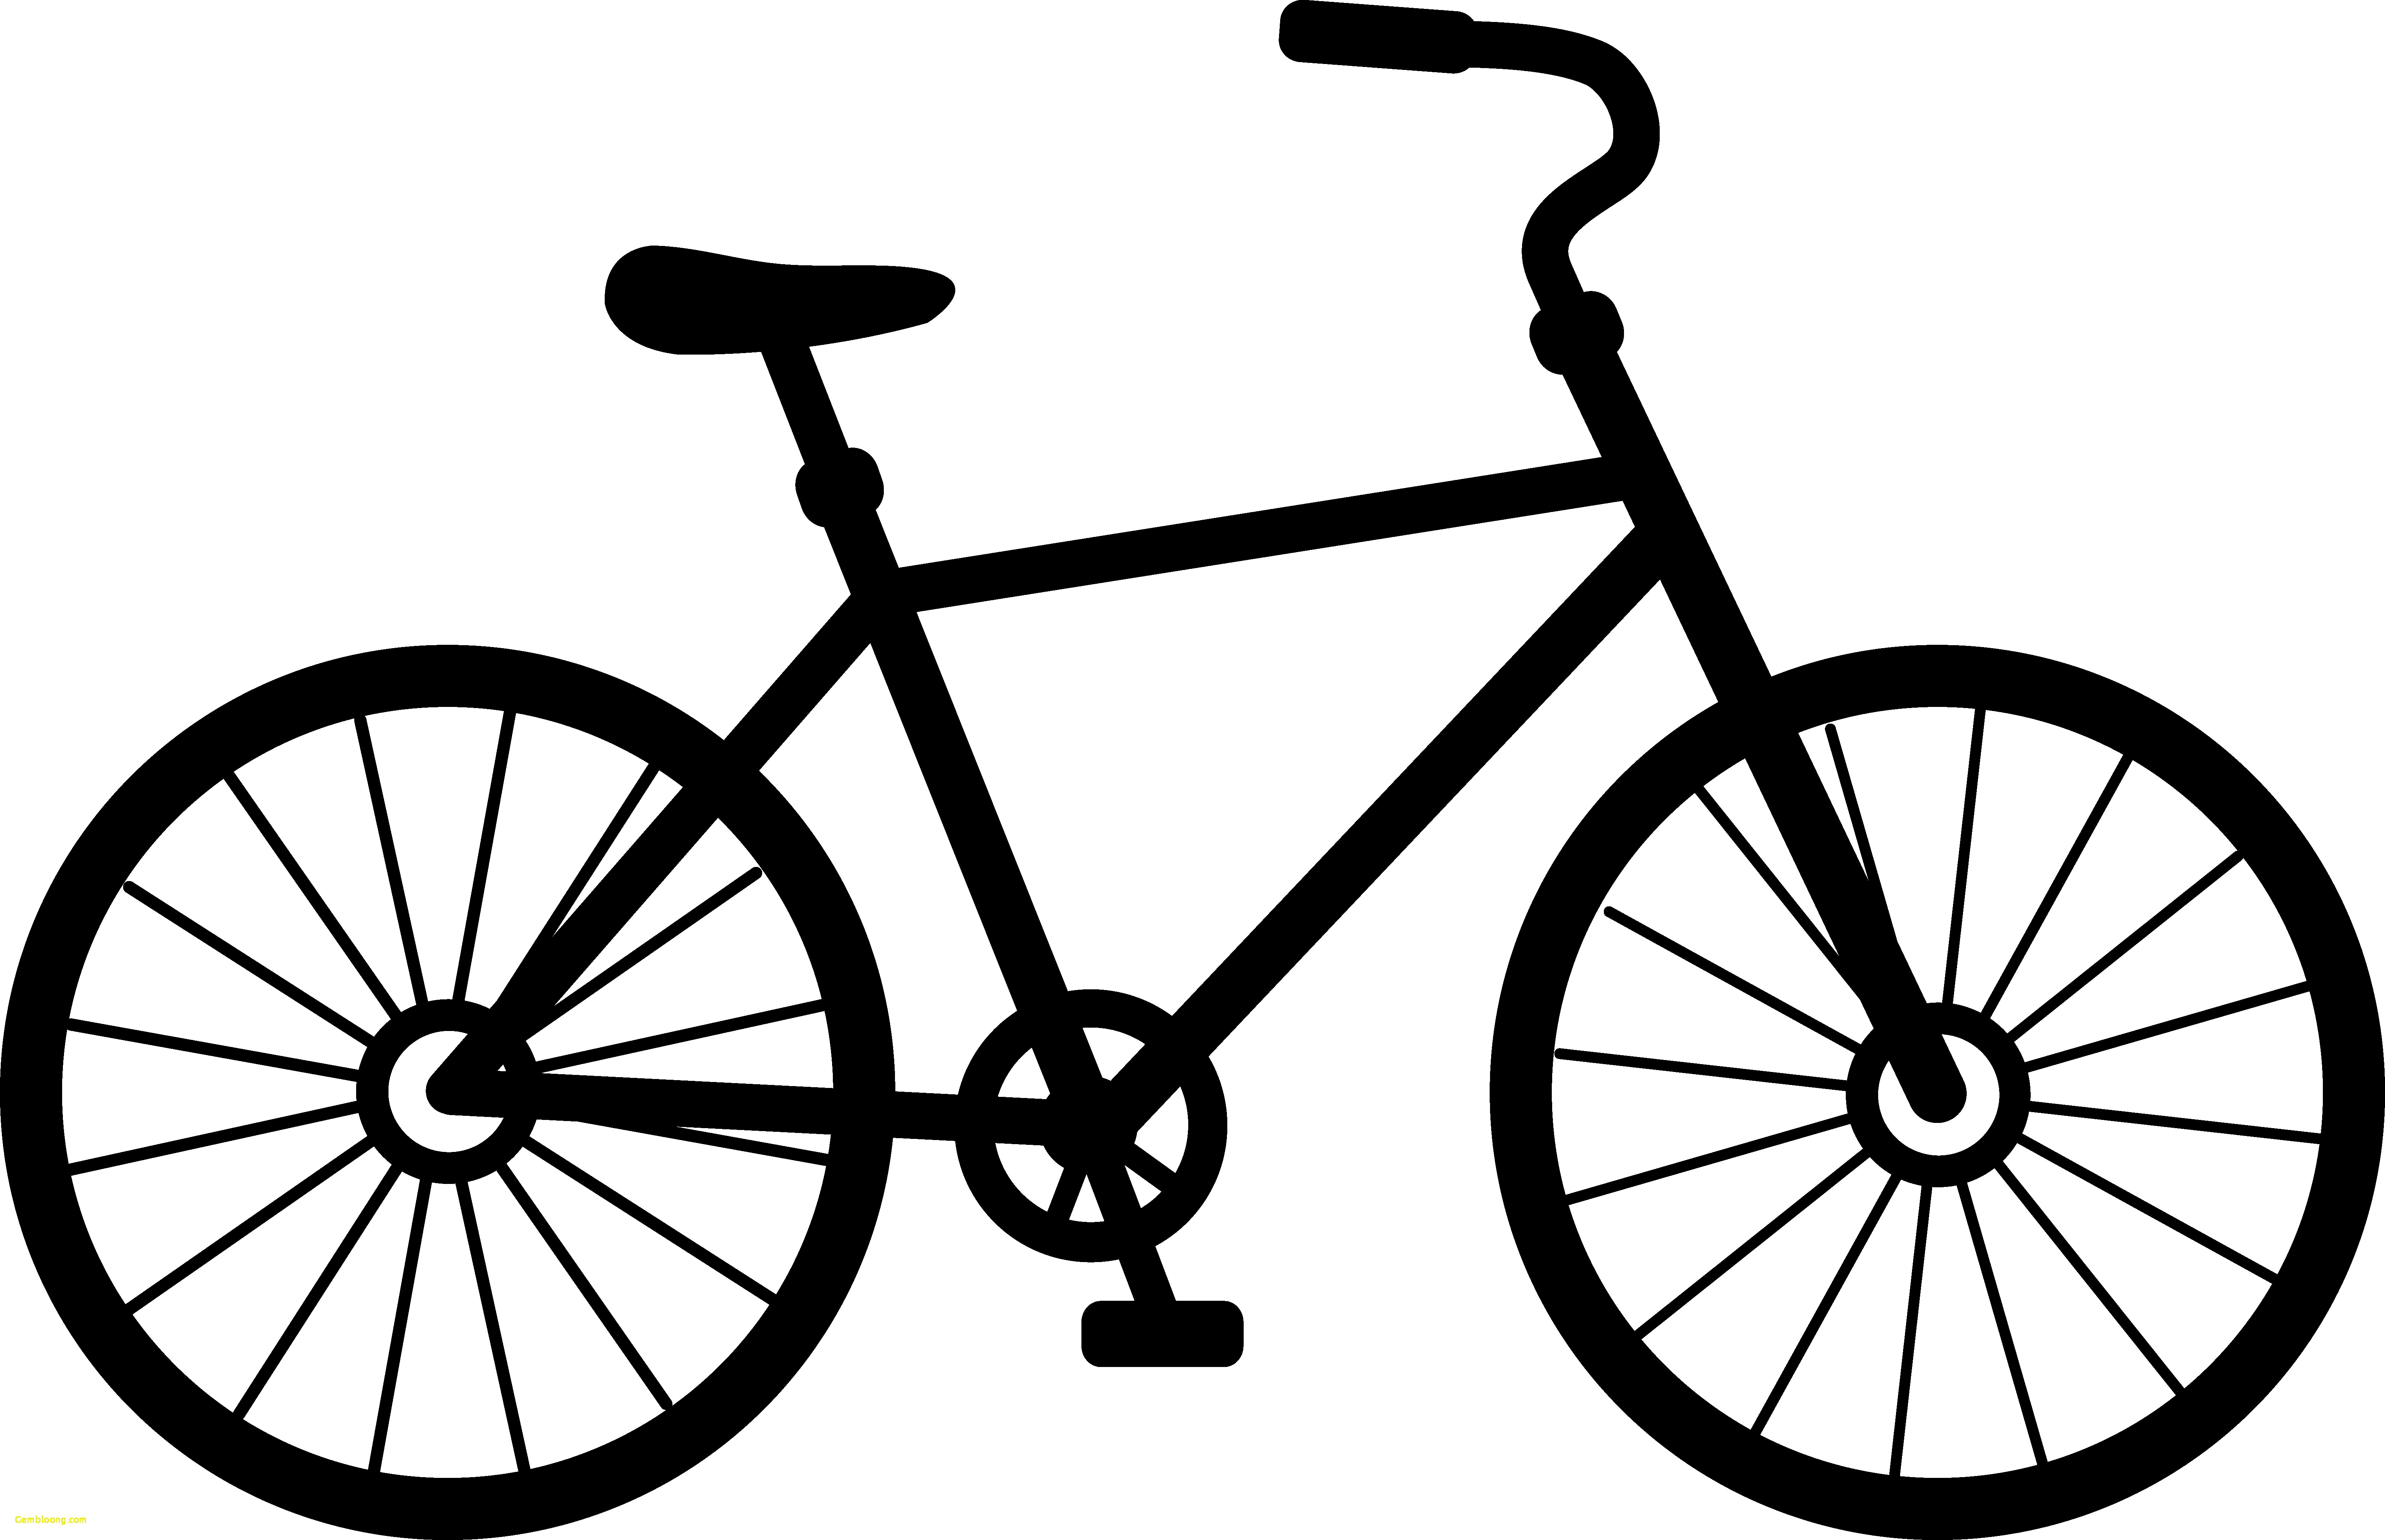 Bicycle clipart. Clip art silhouette at